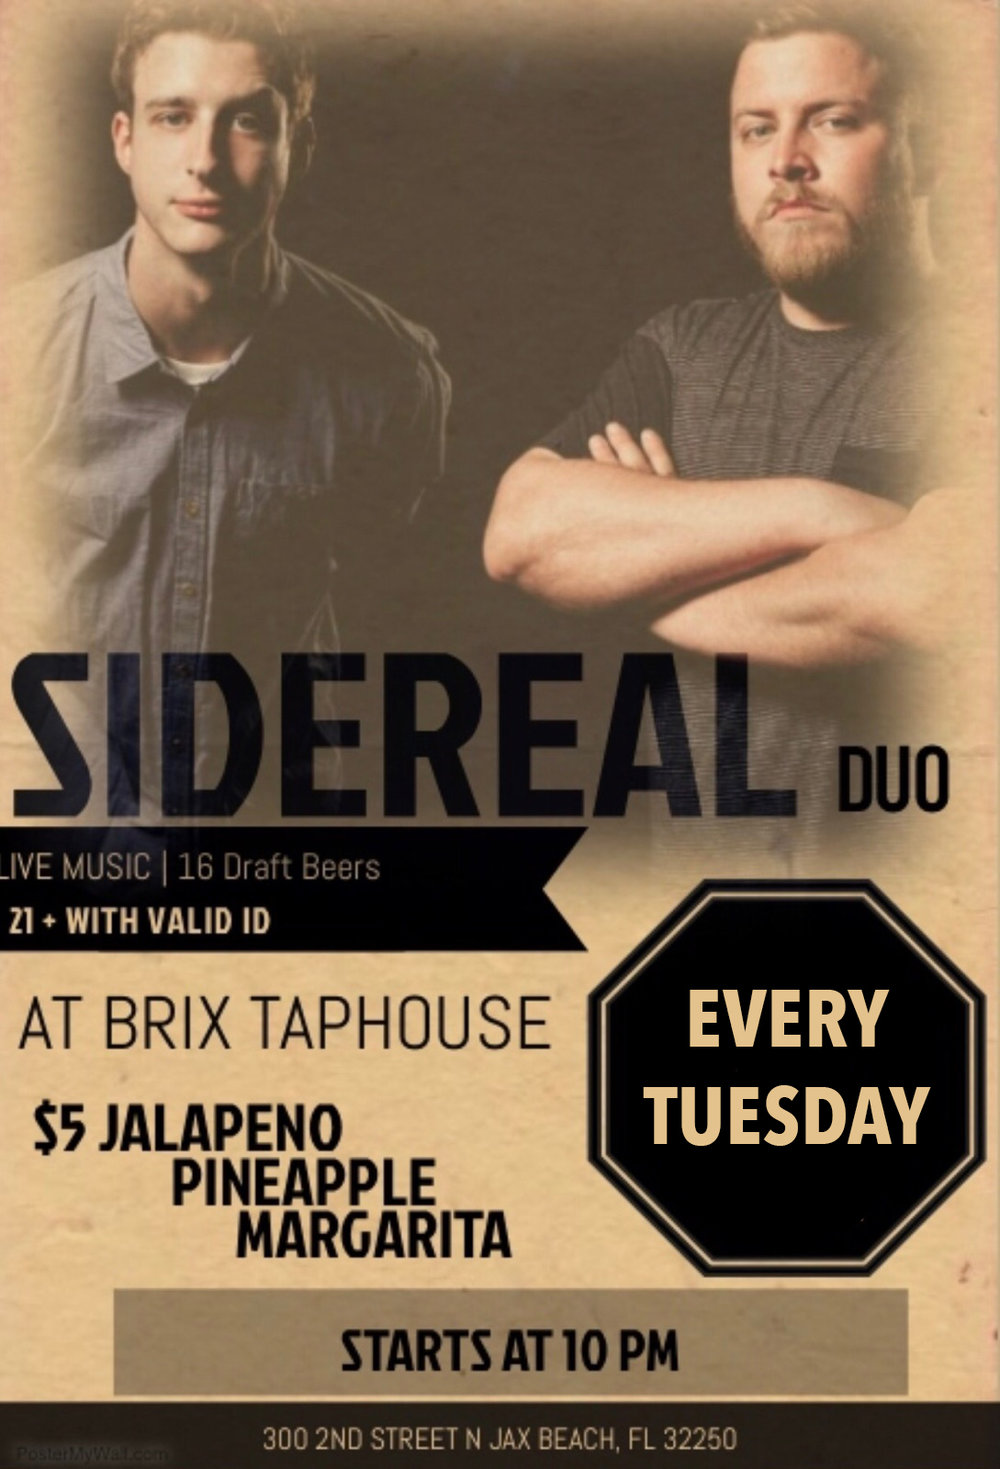 Tuesdays! - Live music at 10pm with Sidereal duo.$5 Palomas and Margarita. $3 Maestro Dobel tequila. Happy Hour midnight til close.